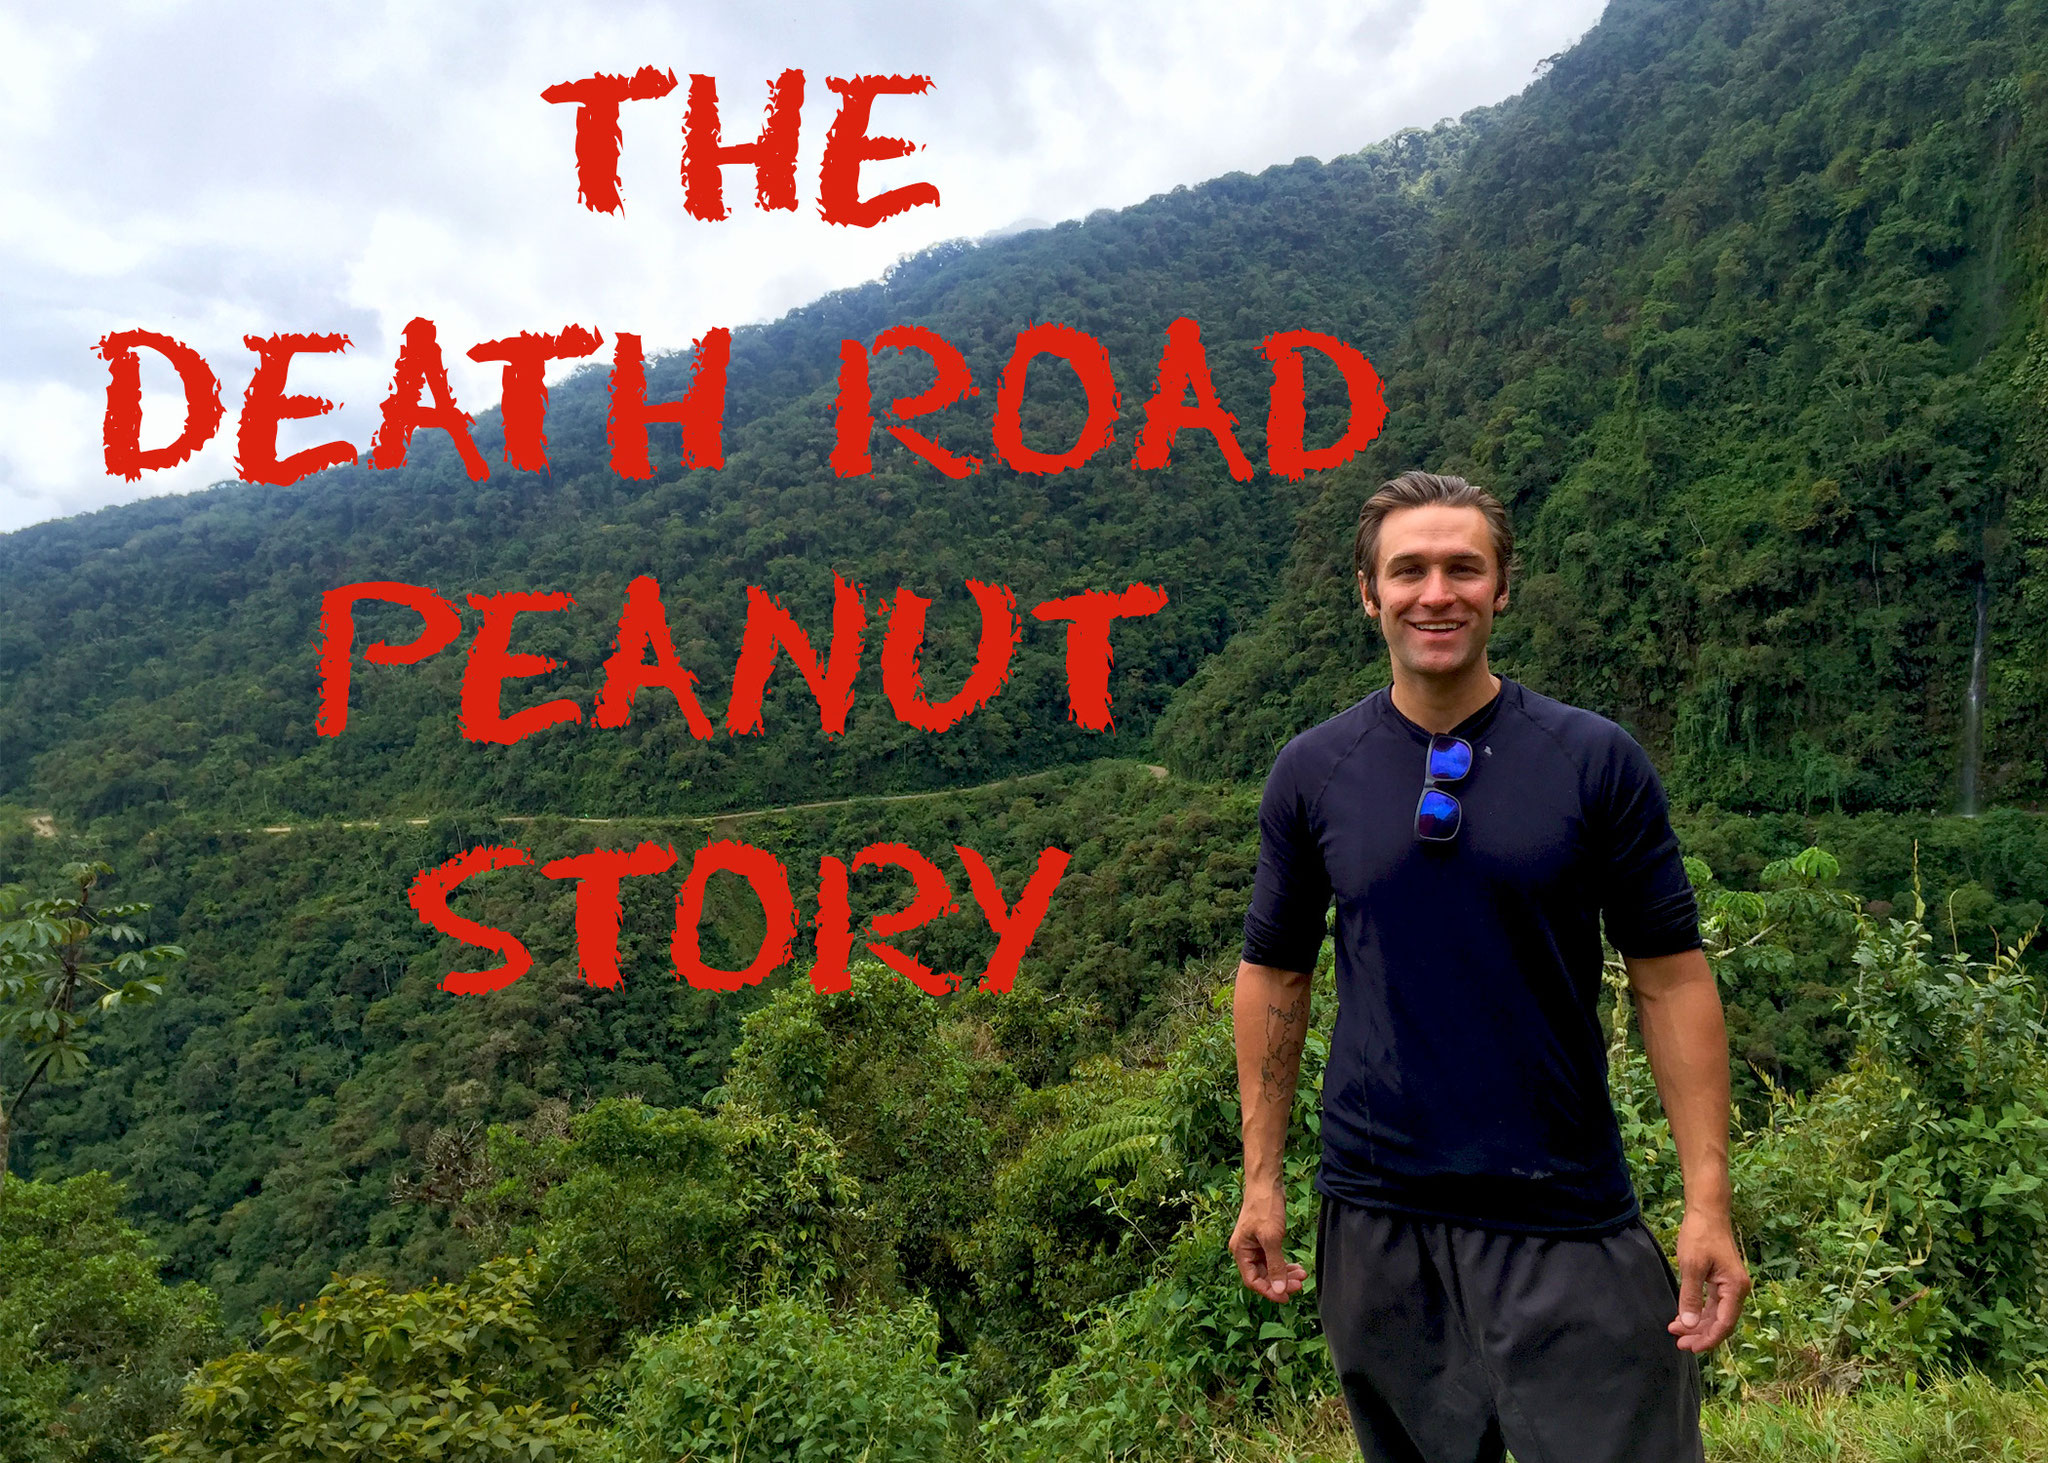 The Death Road Peanut Story